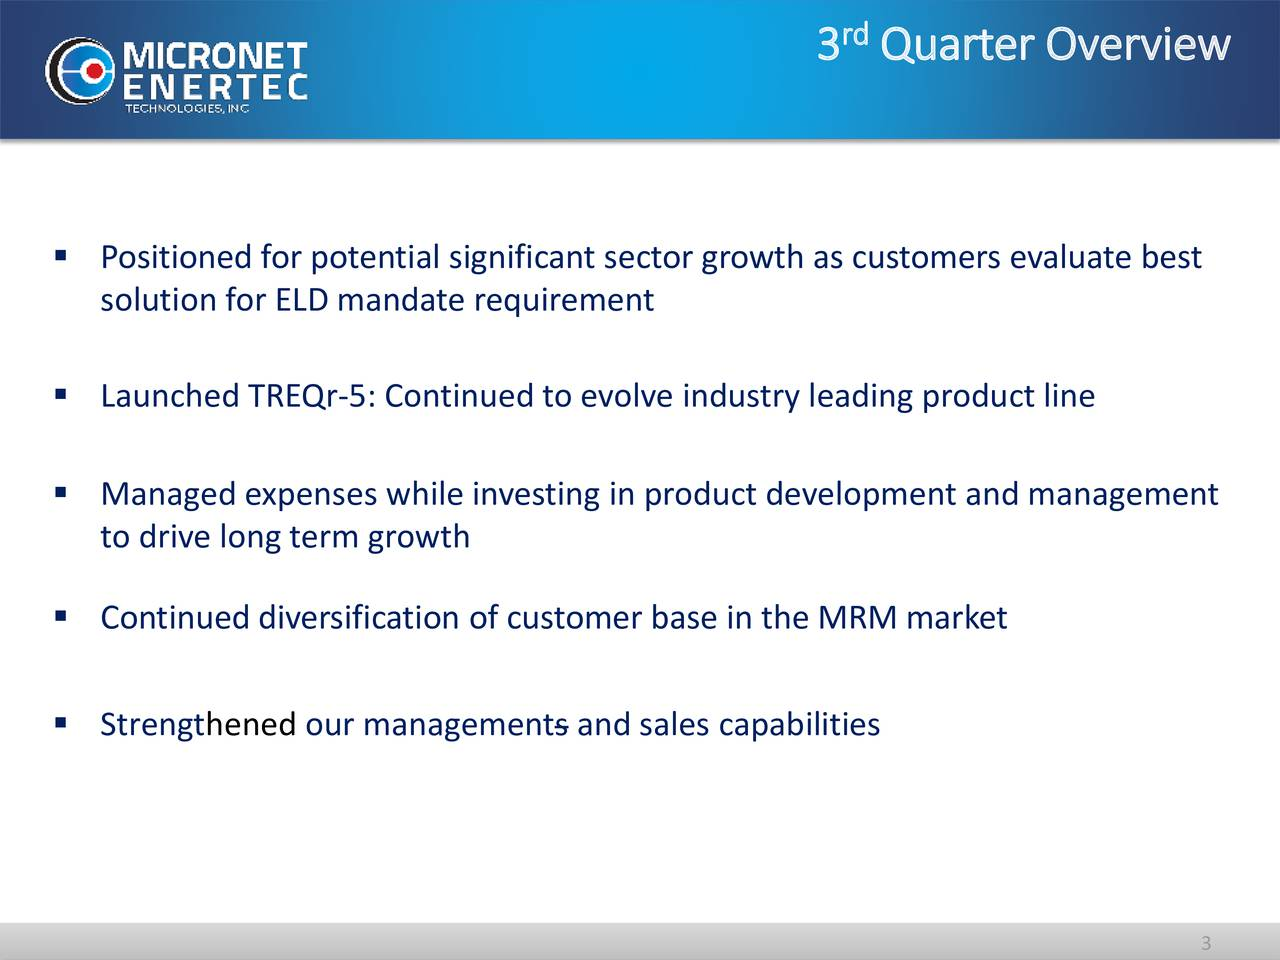 3 Quarter Overview Positioned for potential significant sector growth as customers evaluate best solution for ELD mandate requirement Launched TREQr-5: Continued to evolve industry leading product line Managed expenses while investing in product development and management to drive long term growth Continued diversification of customer base in the MRM market Strengthened our managements and sales capabilities